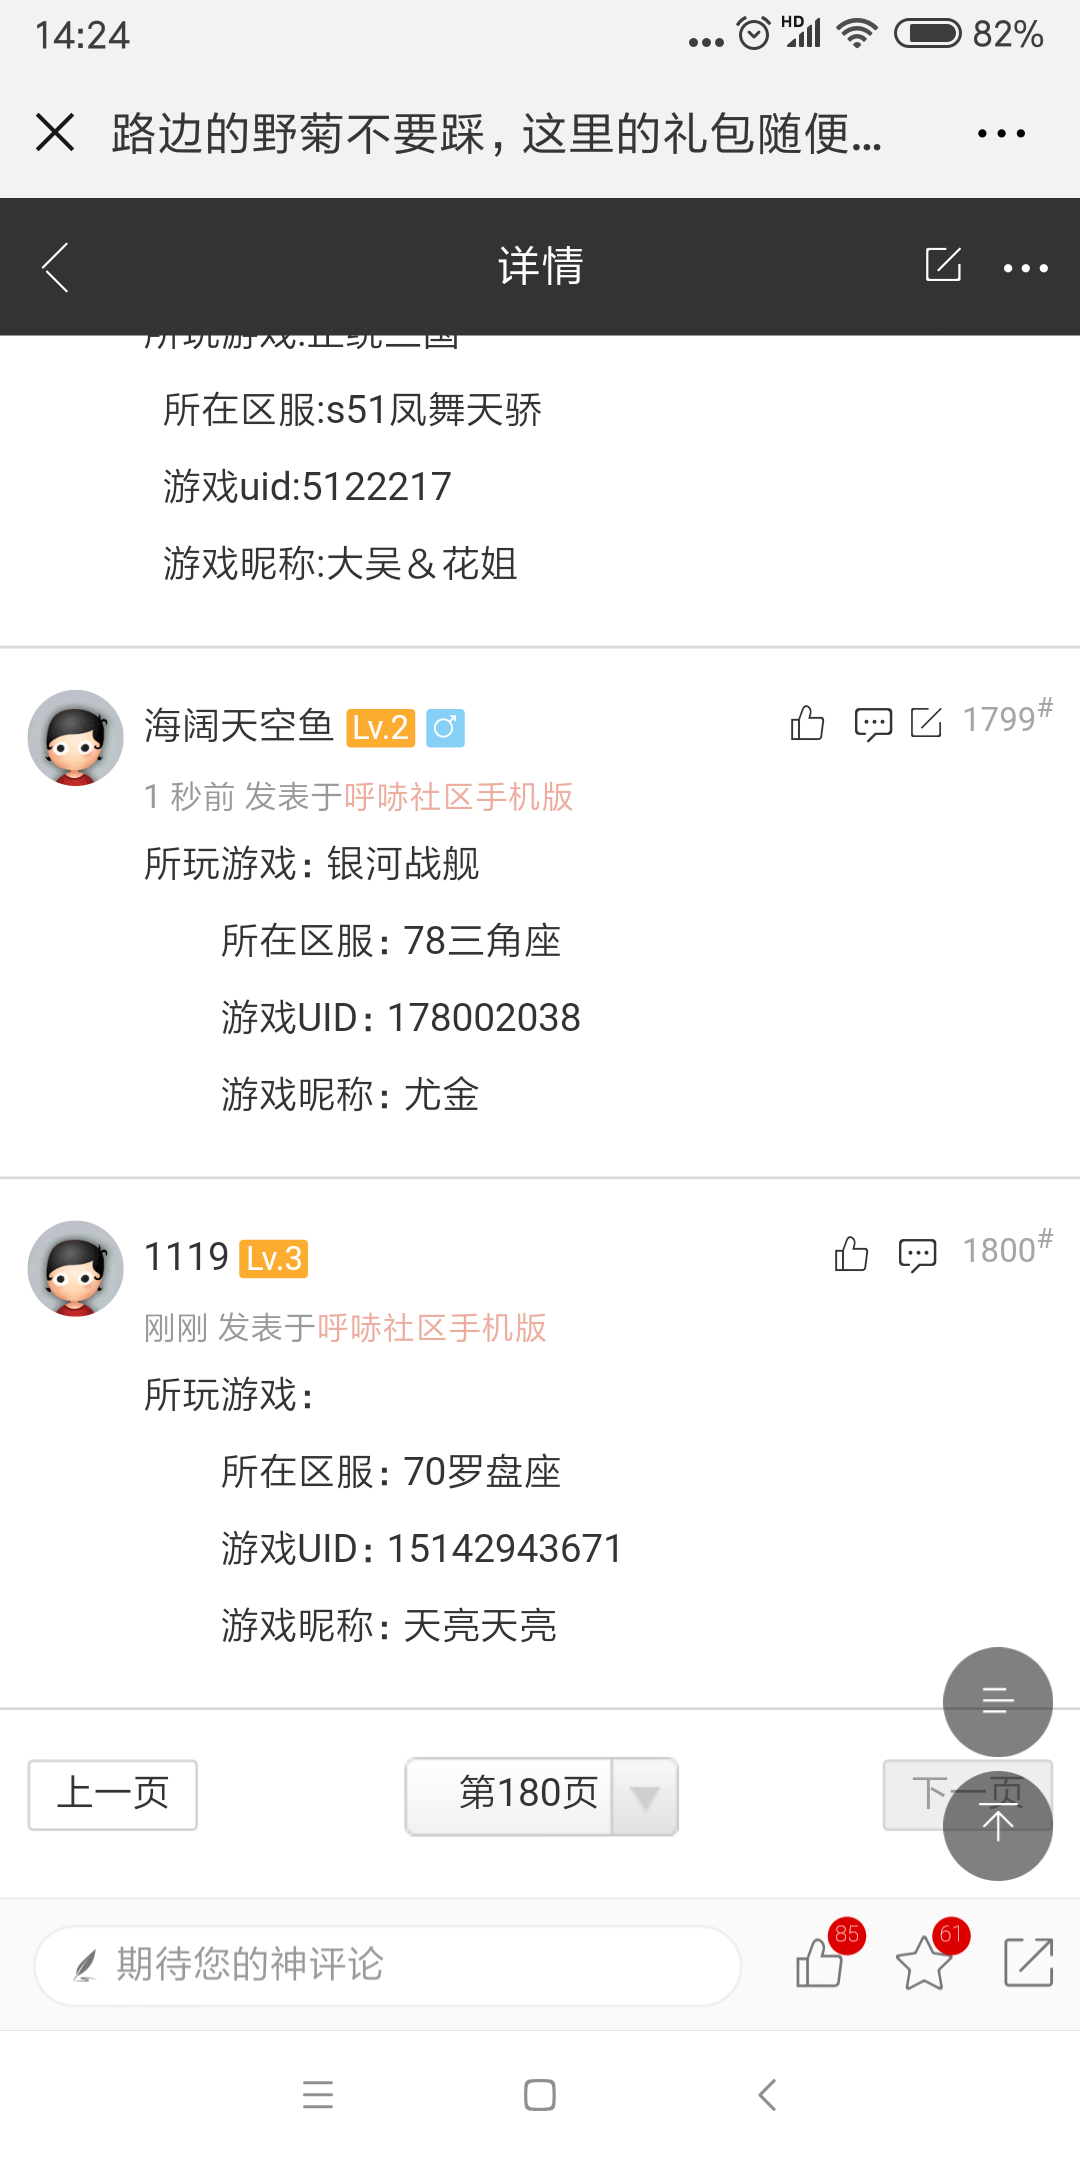 Screenshot_2018-10-17-14-24-41-676_com.tencent.mm.png